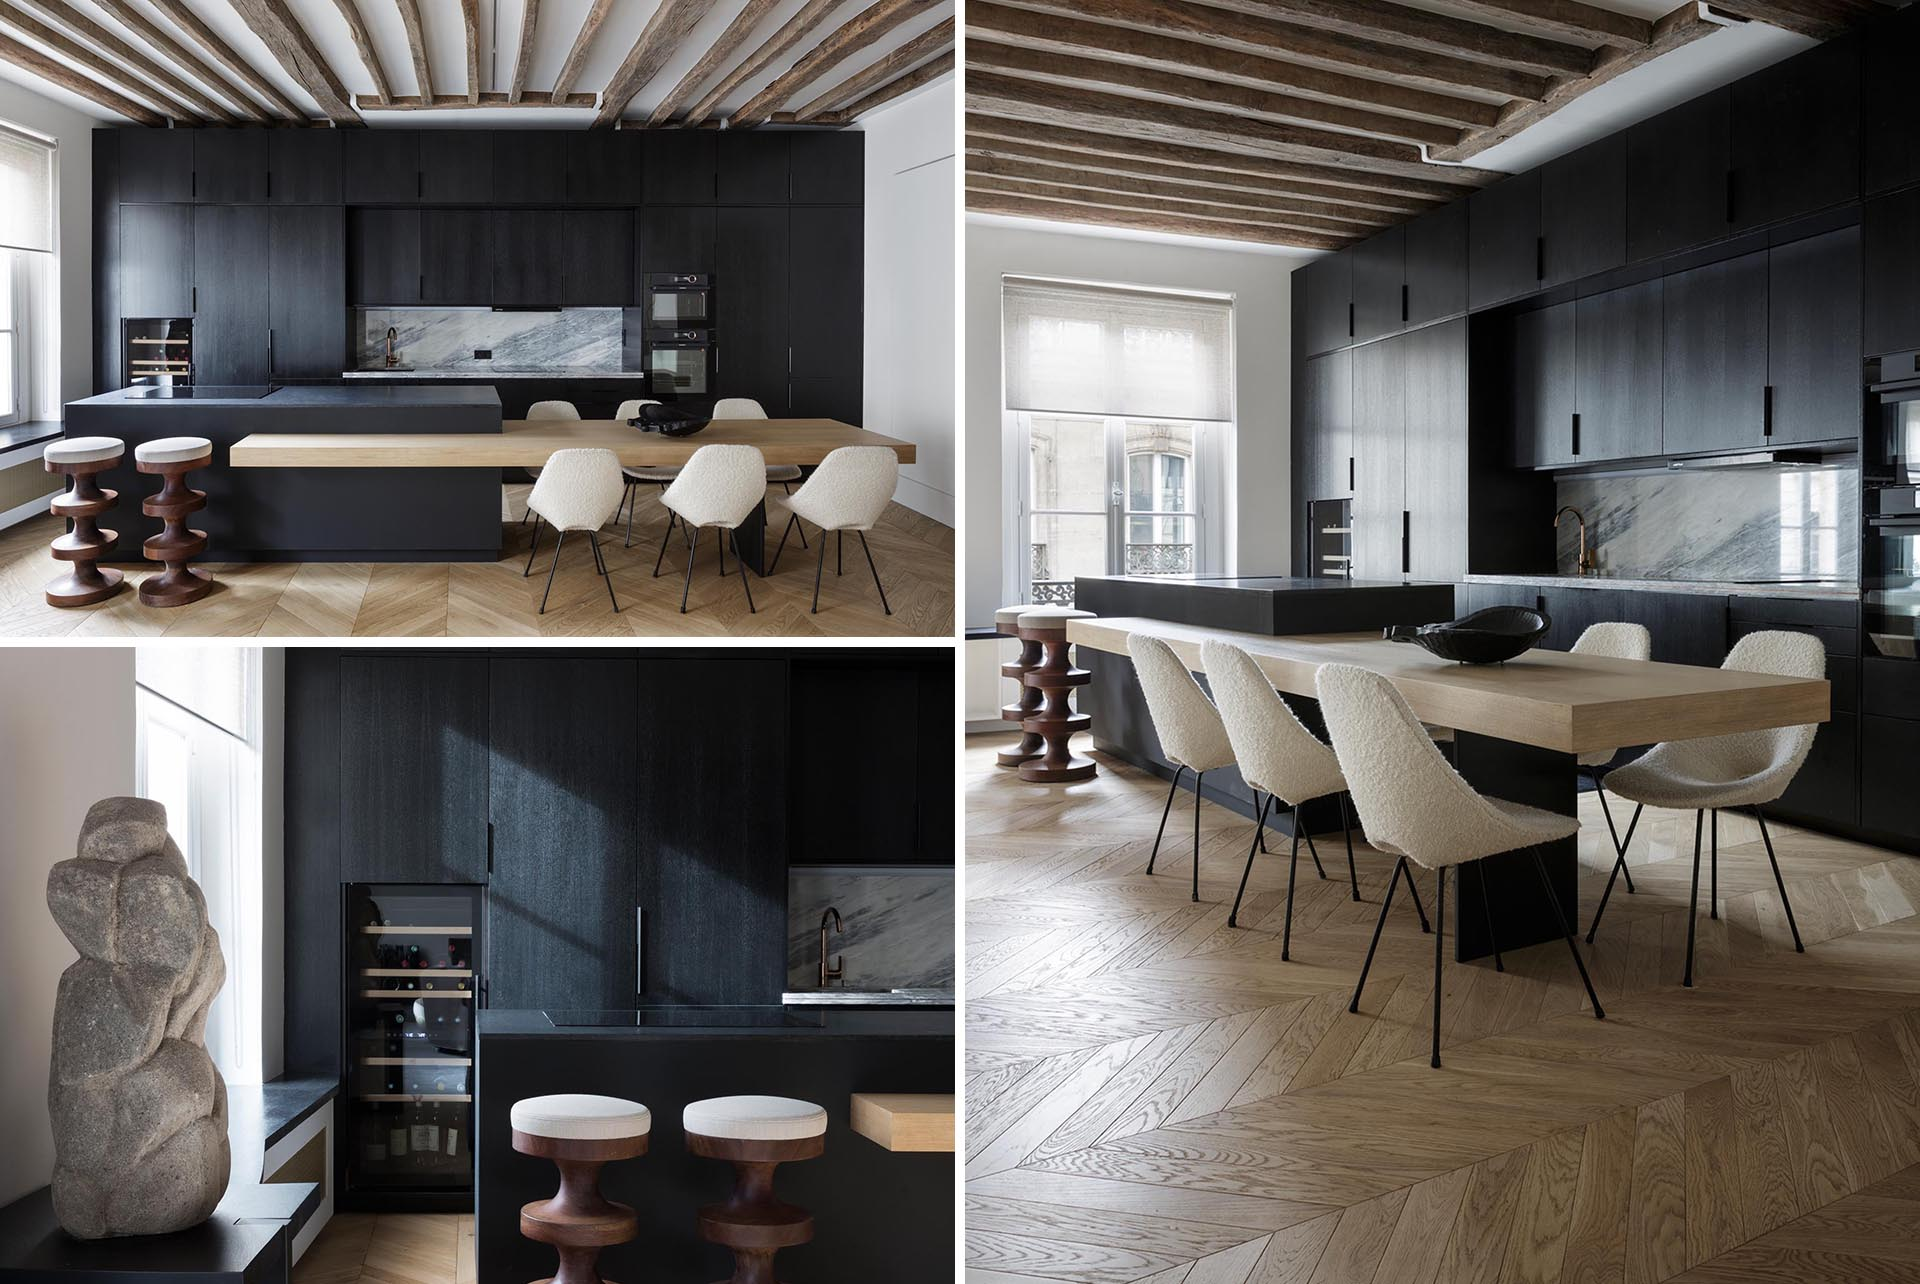 A modern apartment with a matte black kitchen and built-in dining table.